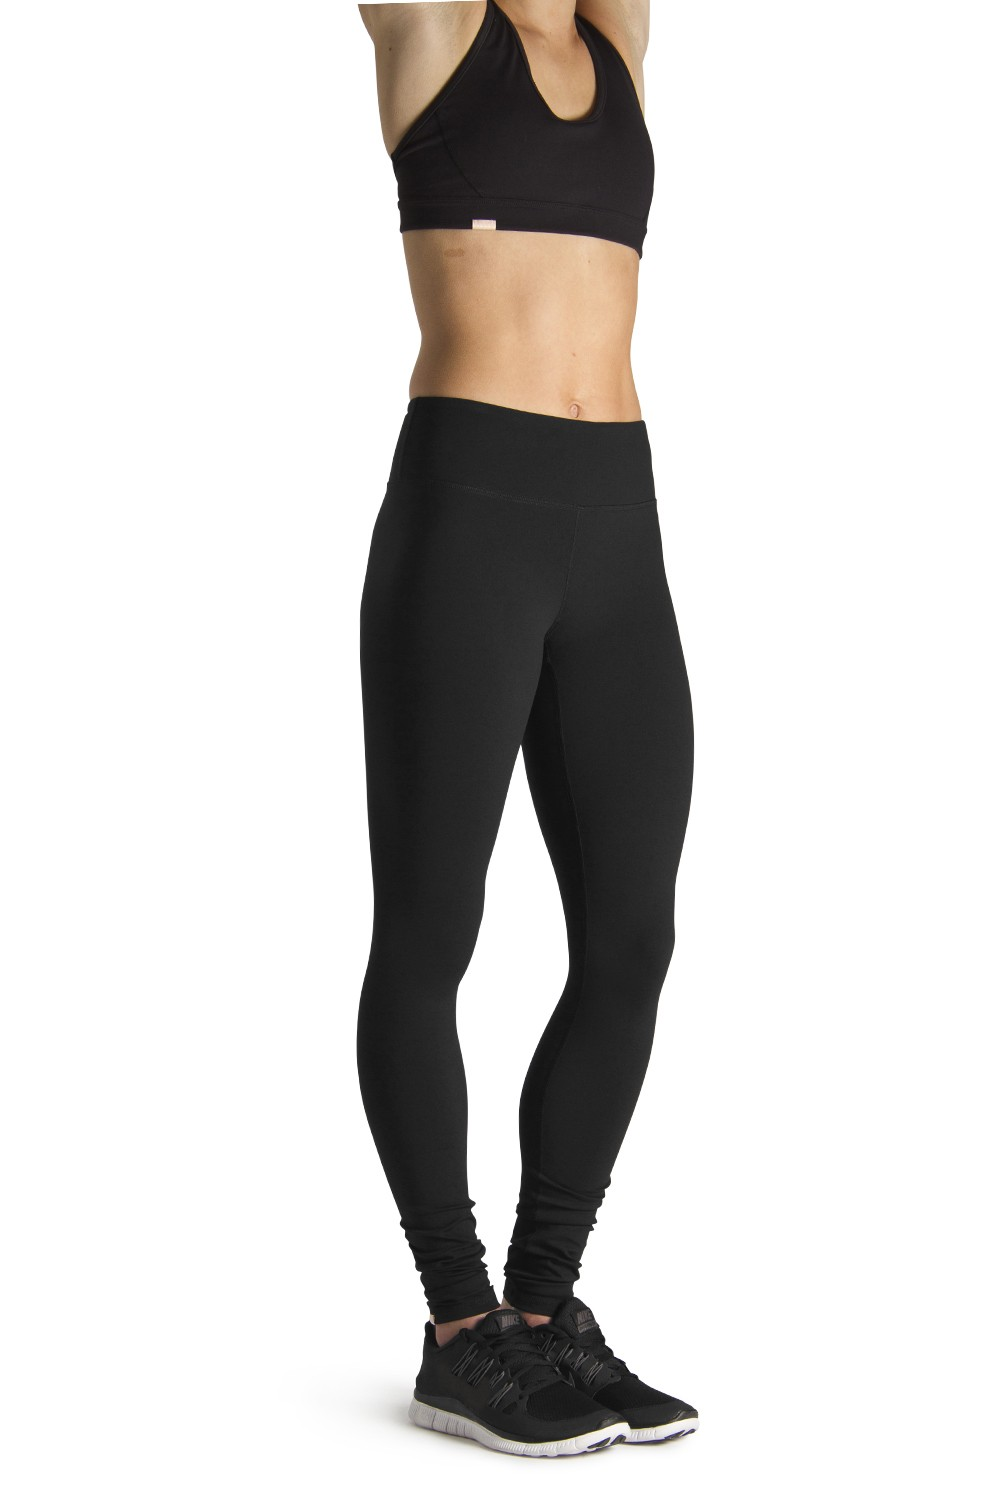 Suprima Hi Rise Legging Women's Bottoms